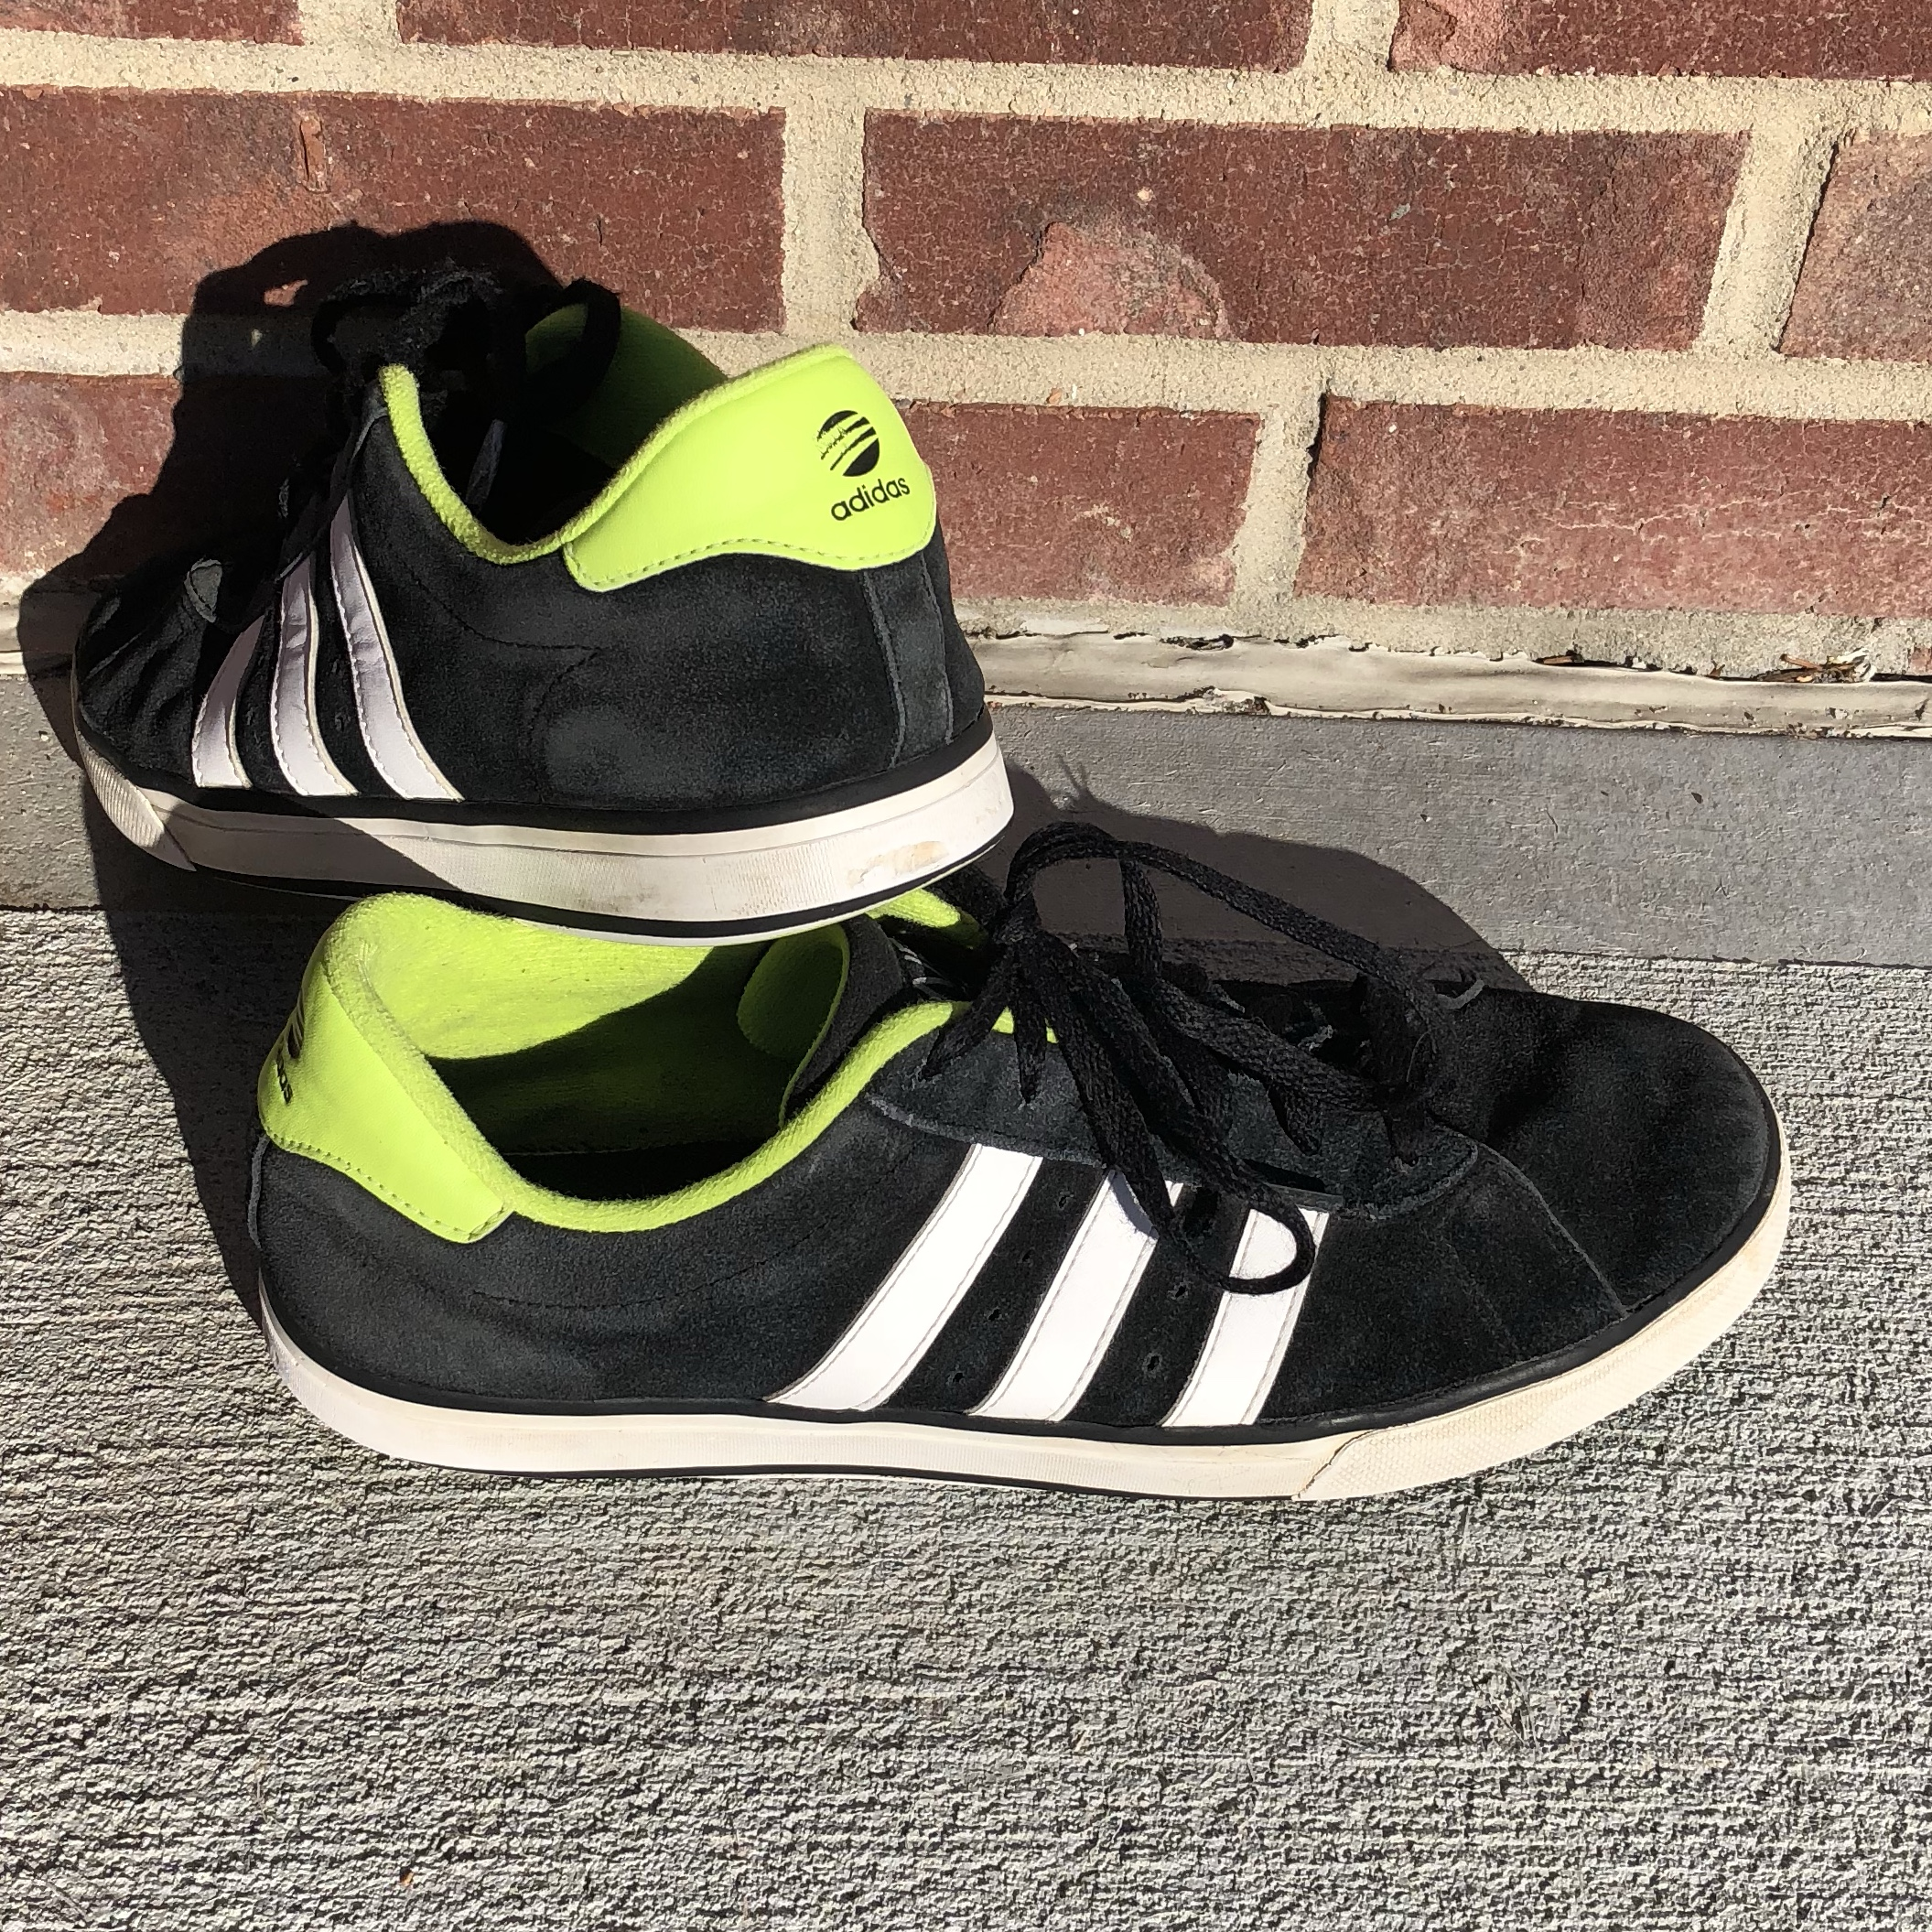 adidas neo welches material